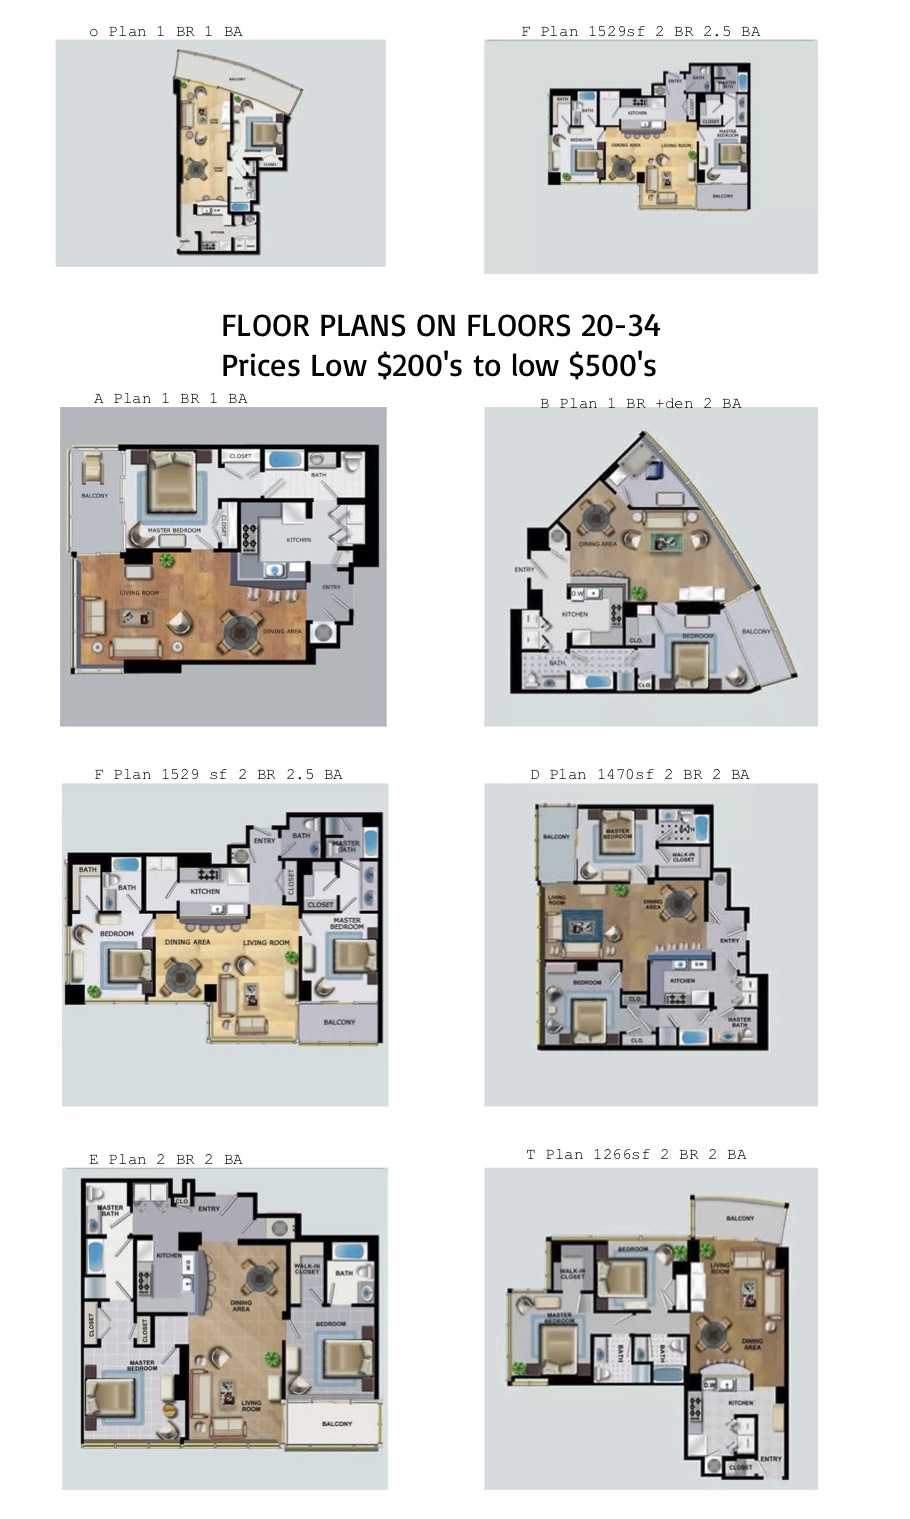 buckheadgrand _ Floor Plans2.jpg